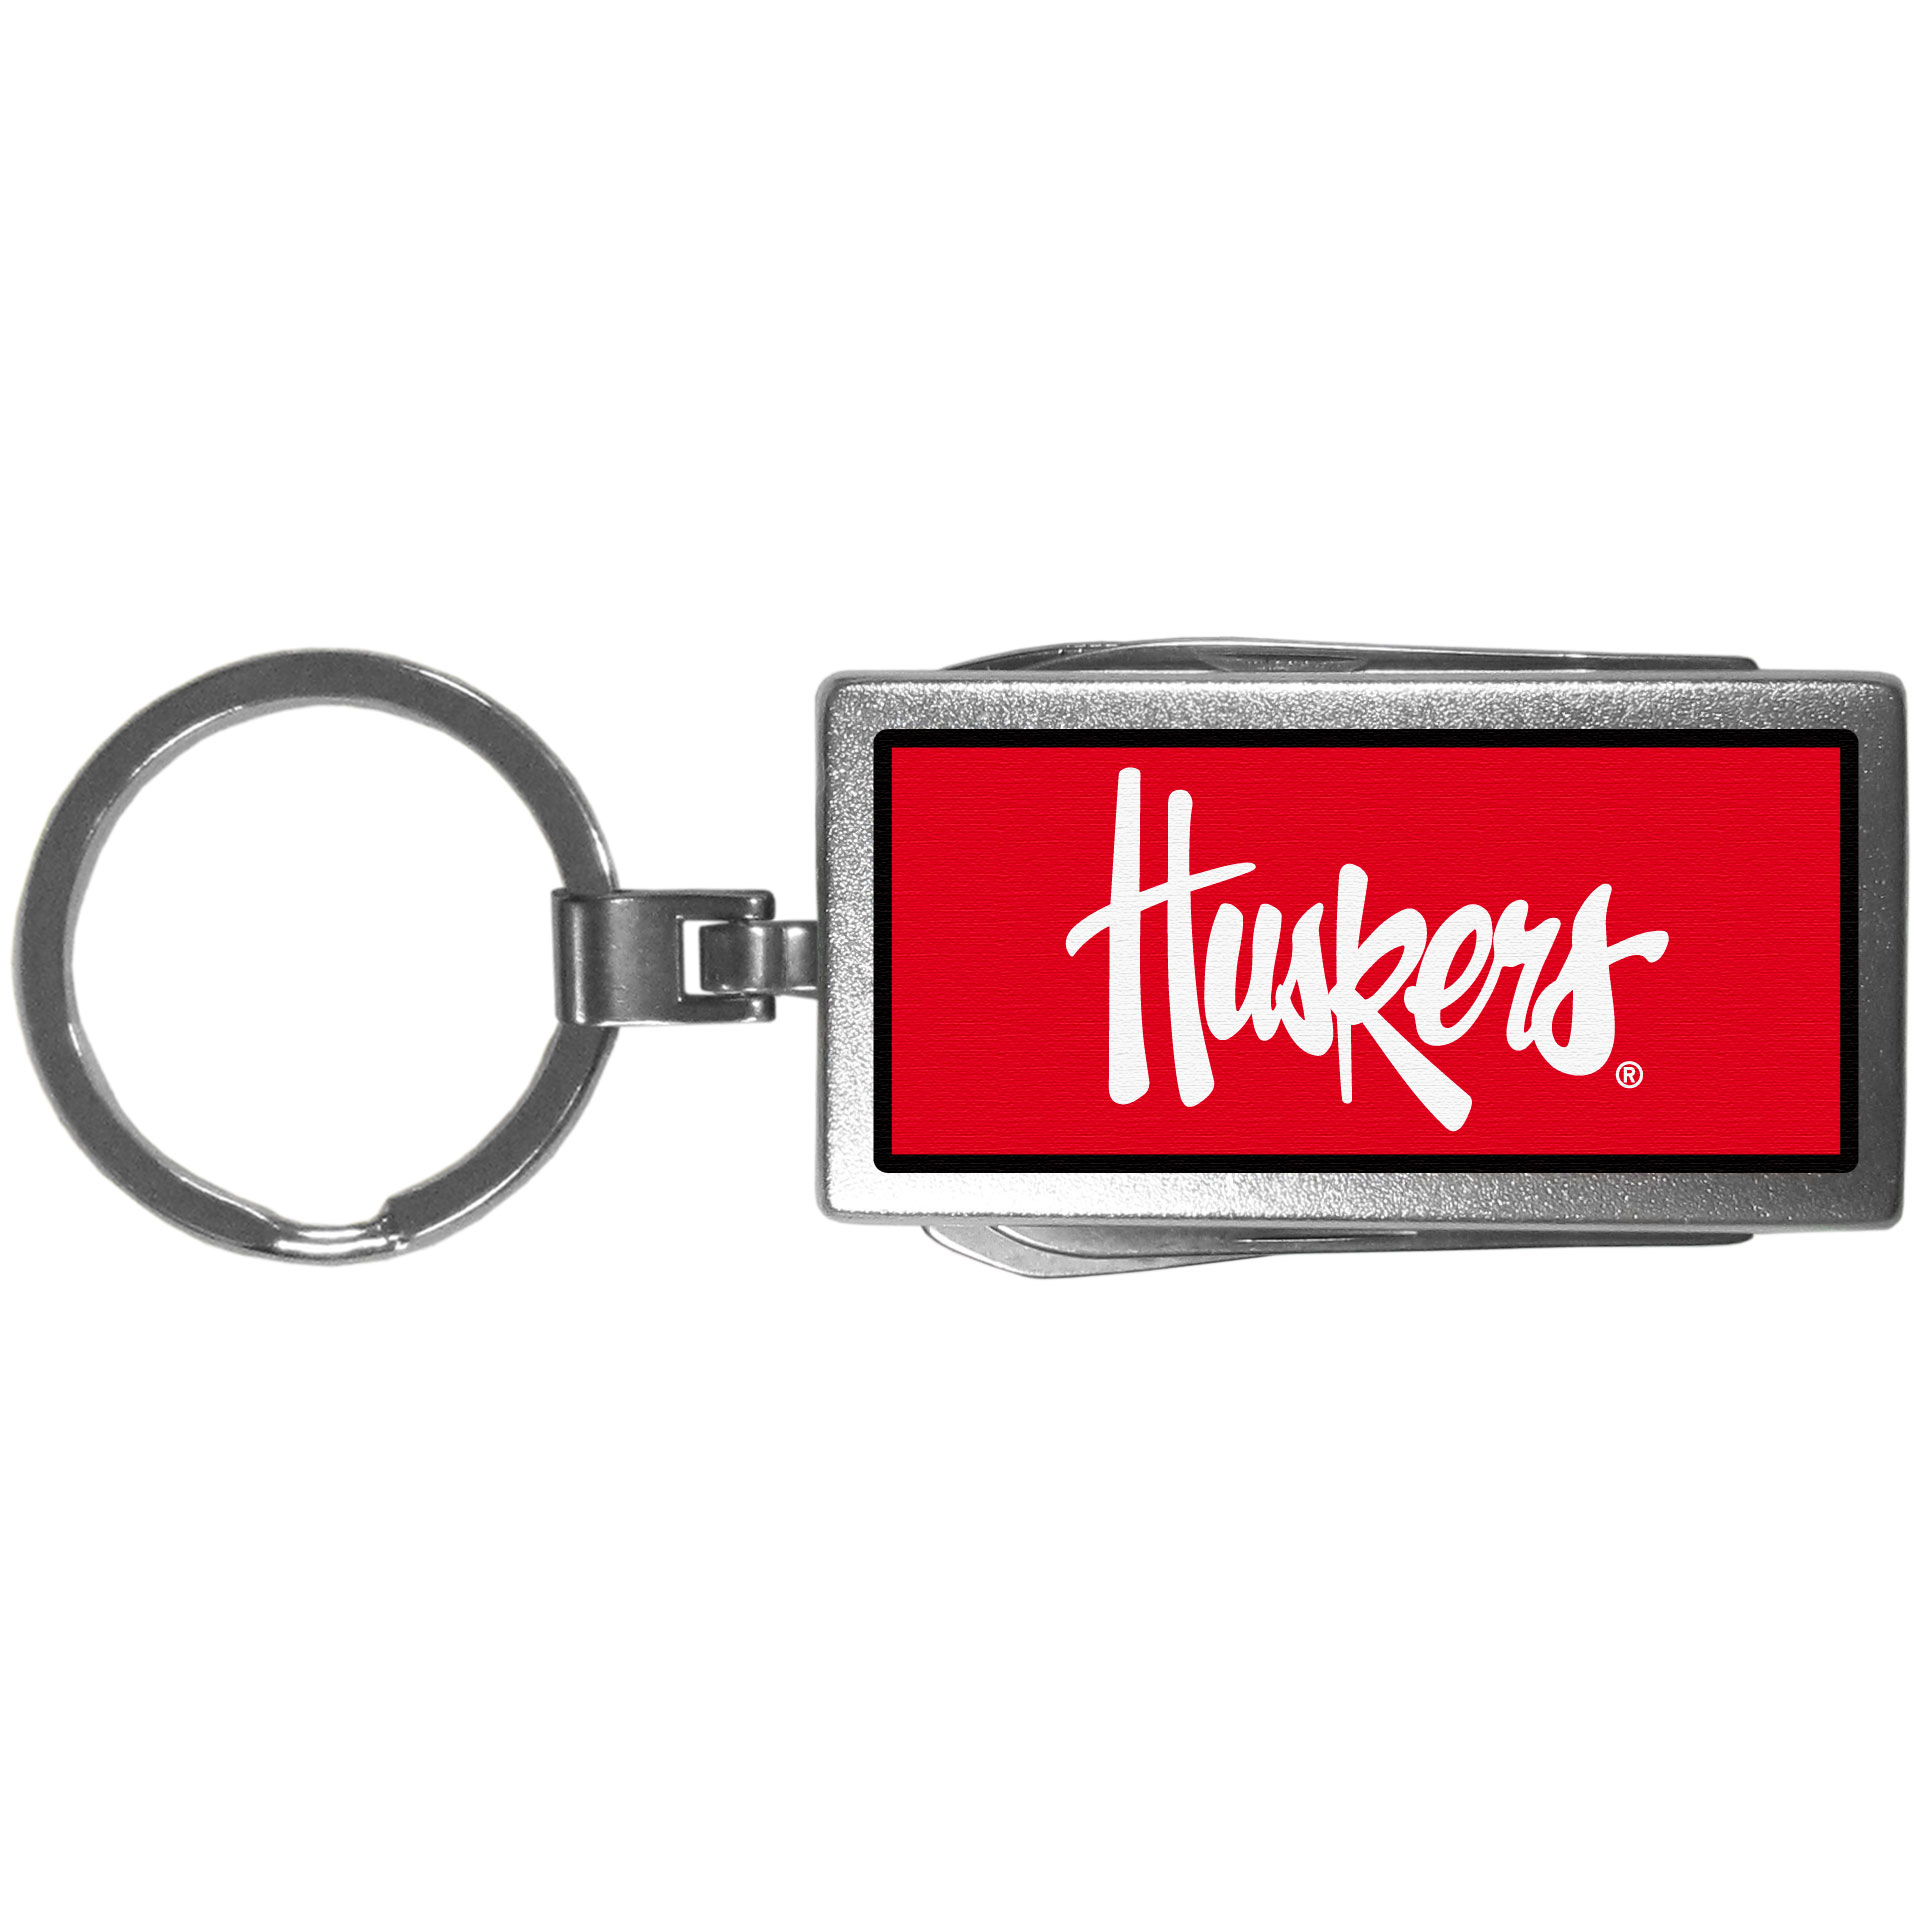 Nebraska Cornhuskers Multi-tool Key Chain, Logo - Be the hero at the tailgate, camping, or on a Friday night with your Nebraska Cornhuskers Multi-Tool Keychain which comes complete with bottle opener, scissors, knife, nail file and screw driver. Be it opening a package or a beverage Siskiyou's Multi-Tool Keychain goes wherever your keys do. The keychain hangs at 4 inches long when closed.